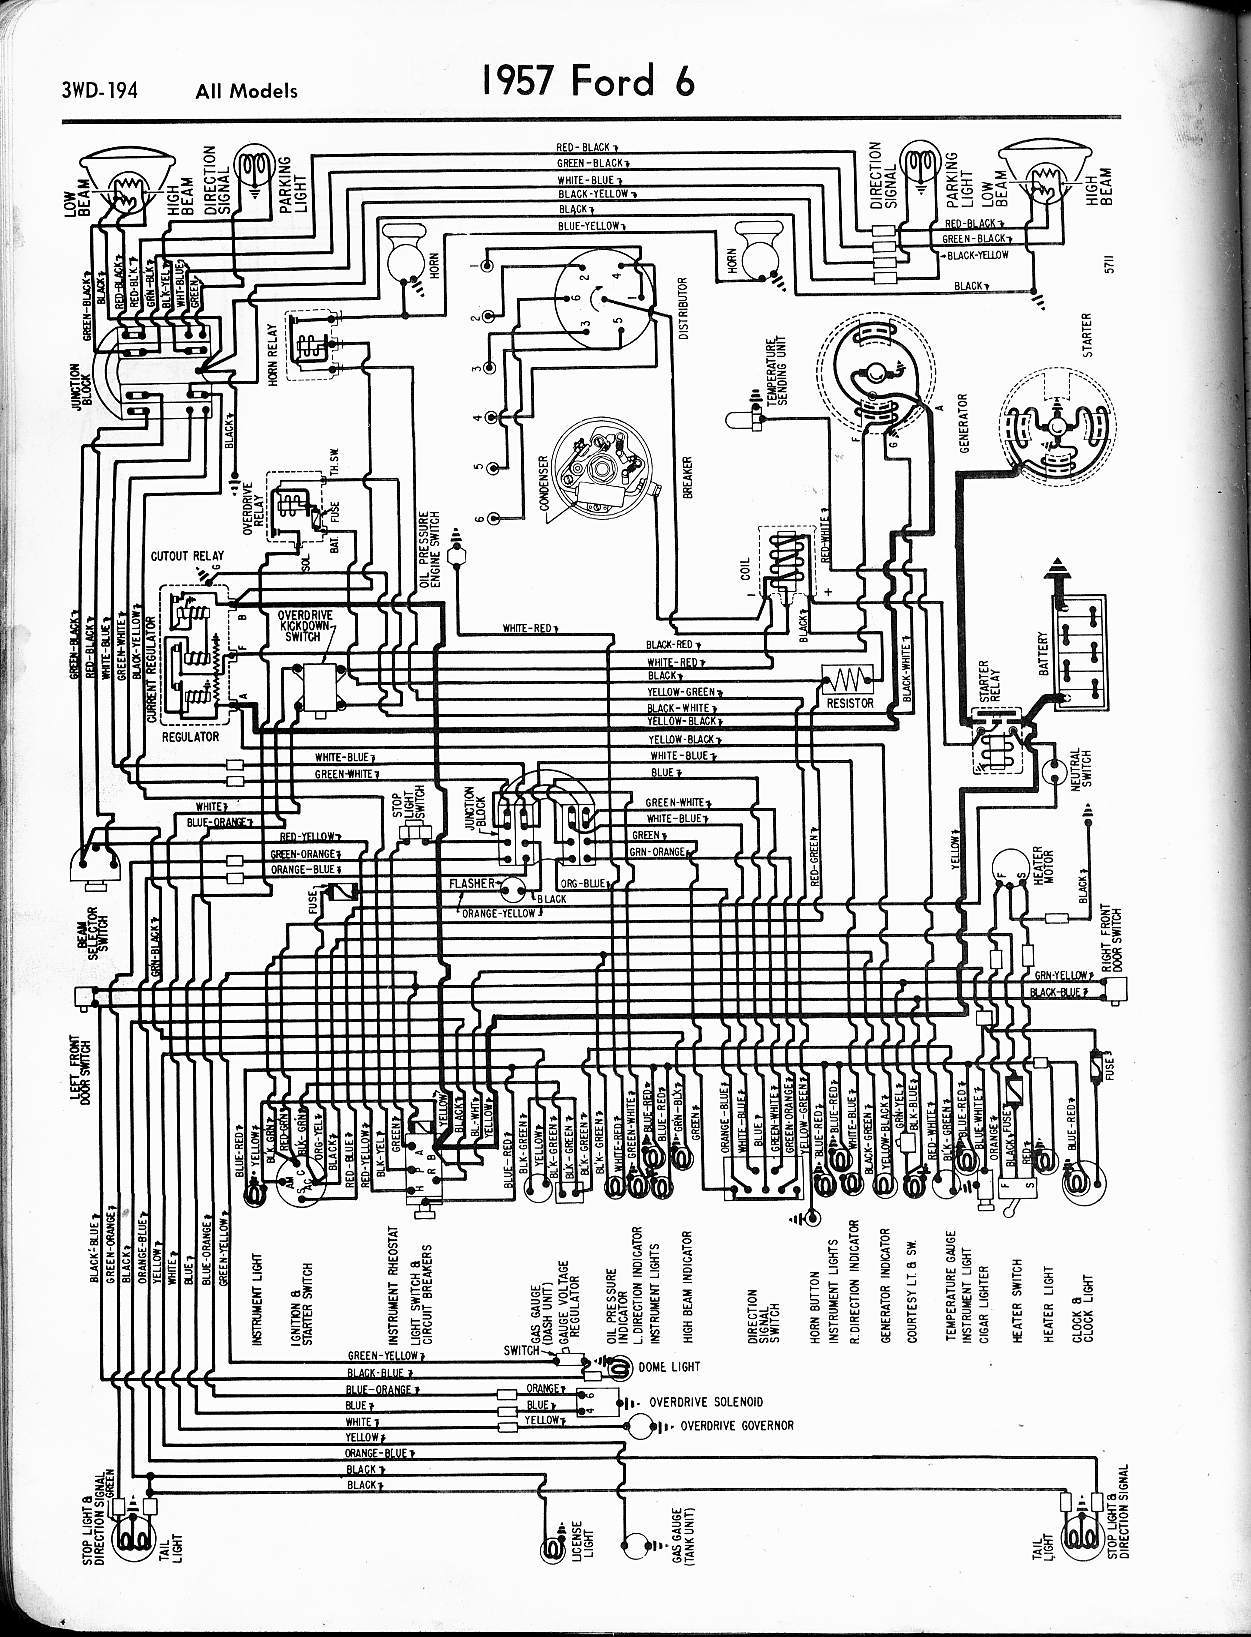 80 2010_07_23_013626_1957_ford_wiring_451fe1d3aafe571893763e4bcbb92521b2870e9d 1957 ford truck wiring diagram ford truck enthusiasts forums ford wiring schematics at readyjetset.co